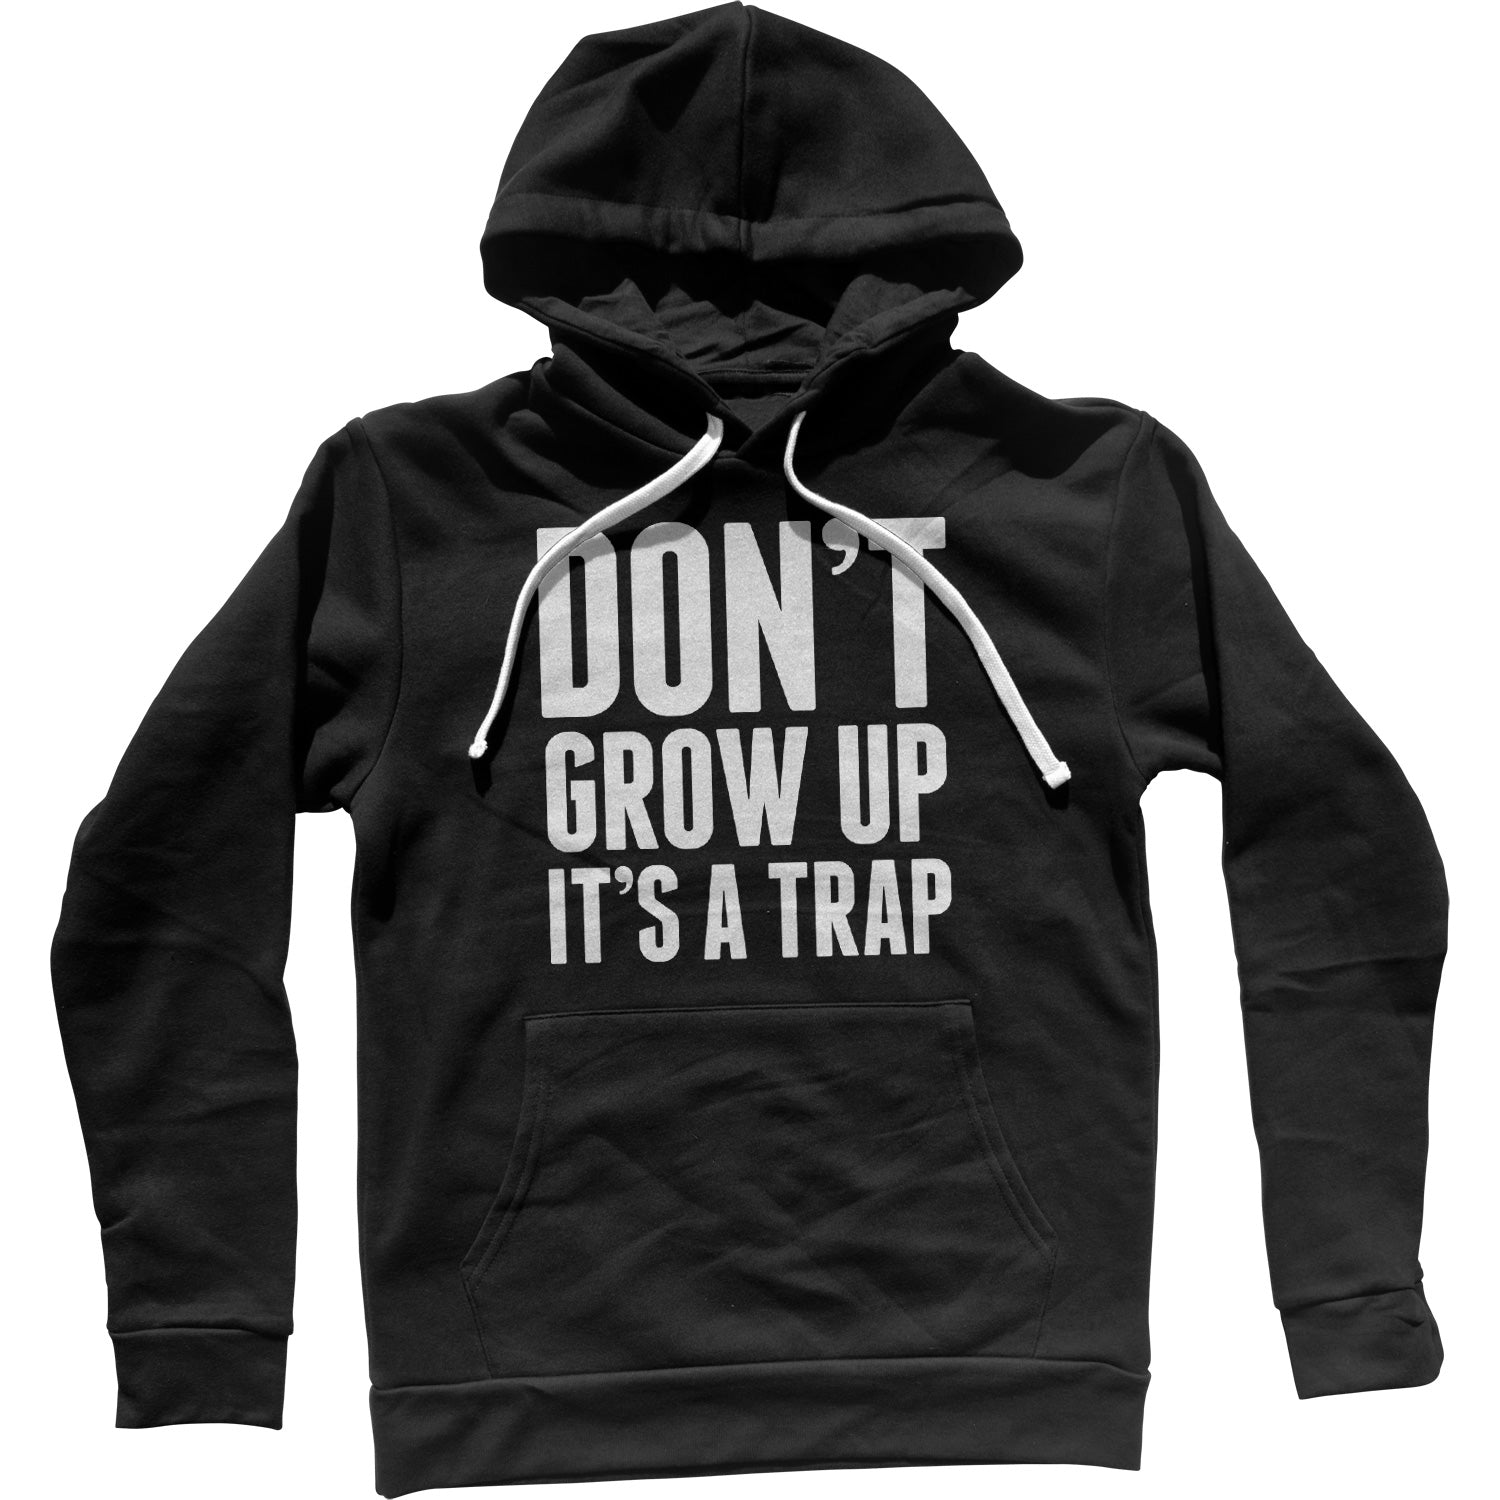 Don't Grow Up It's A Trap Unisex Hoodie